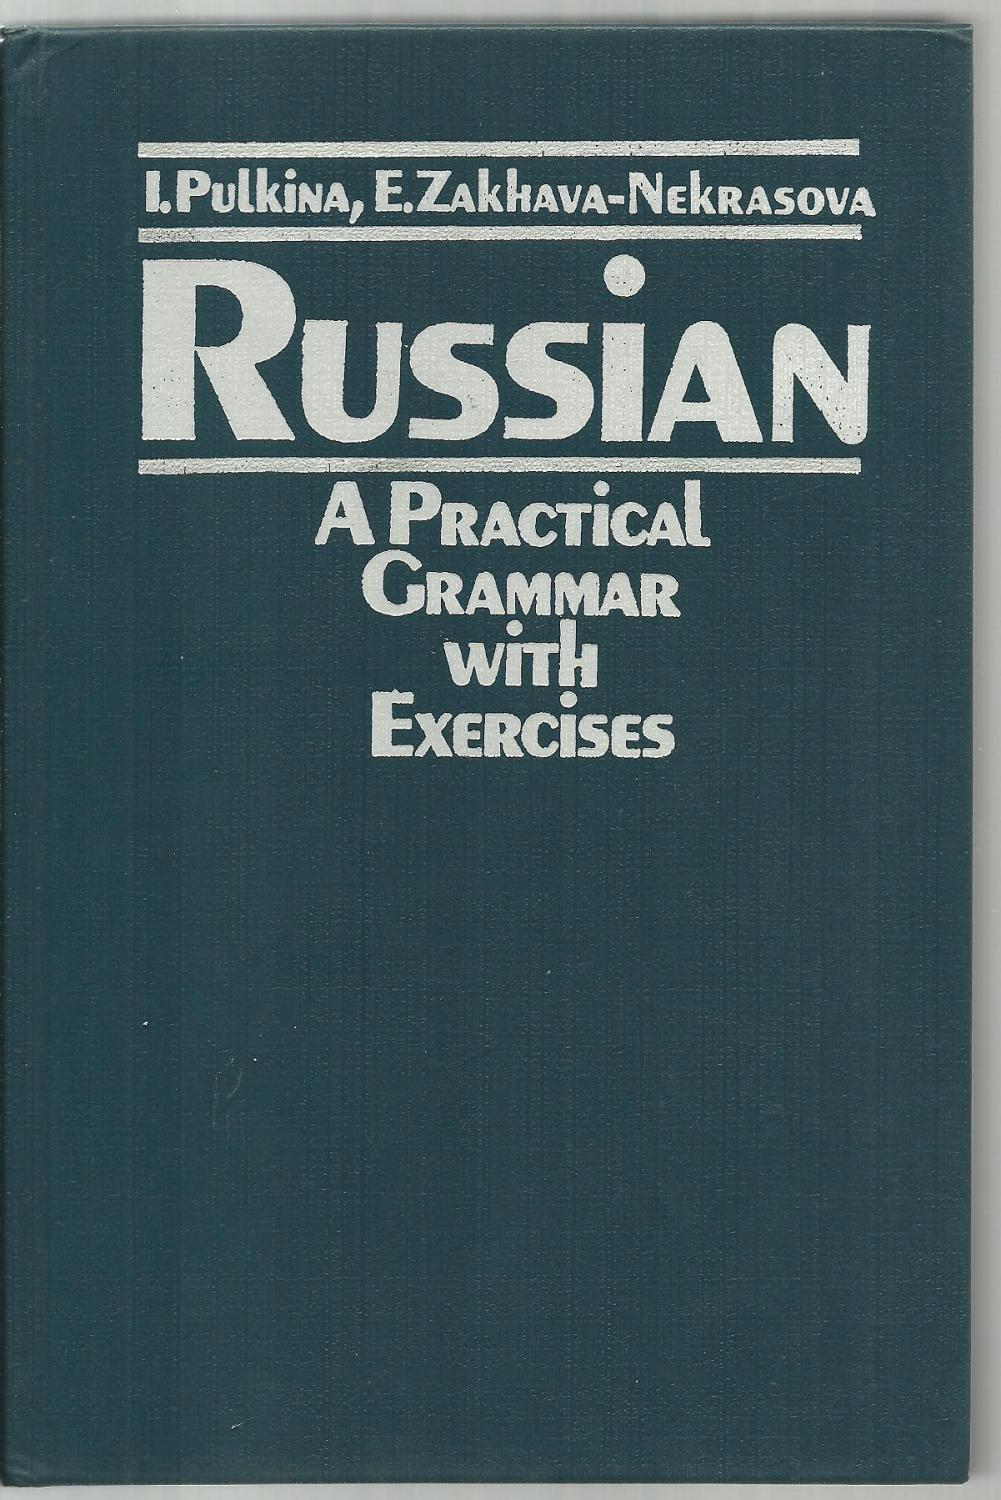 Russian, A Practical Grammar with Exercises by I. Pulkina, E ...